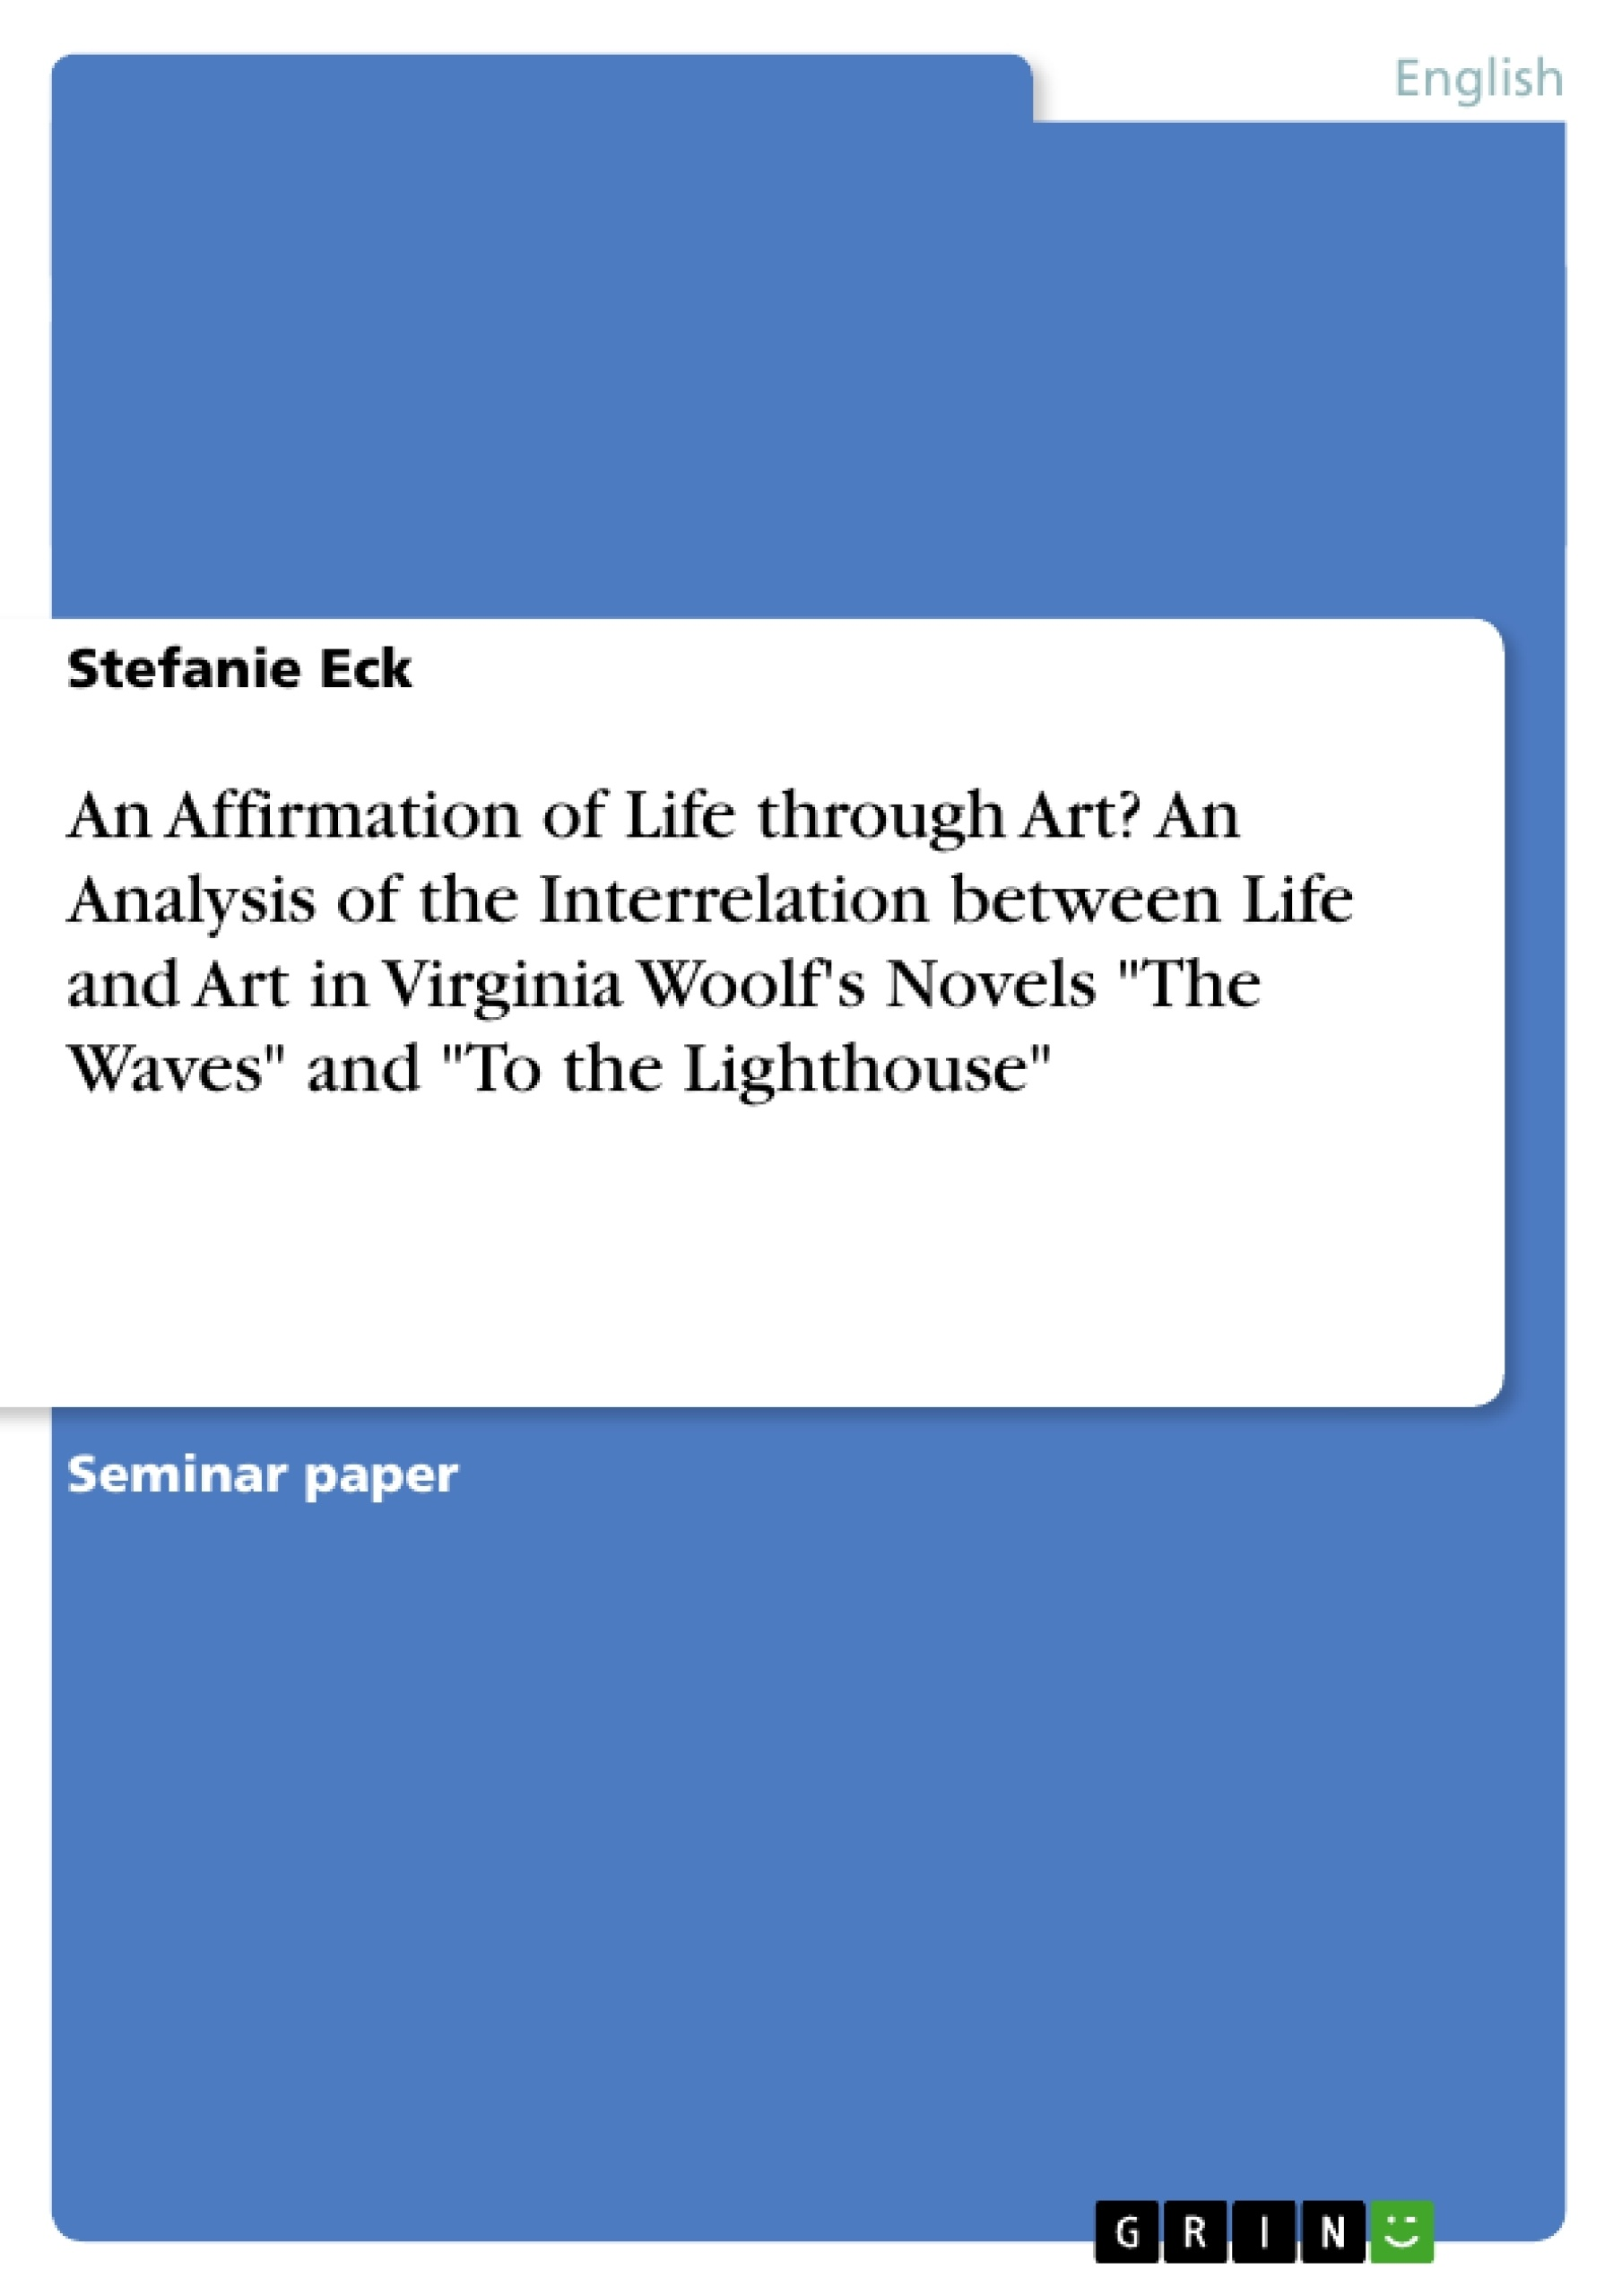 """Title: An Affirmation of Life through Art? An Analysis of the Interrelation between Life and Art in Virginia Woolf's Novels """"The Waves"""" and """"To the Lighthouse"""""""